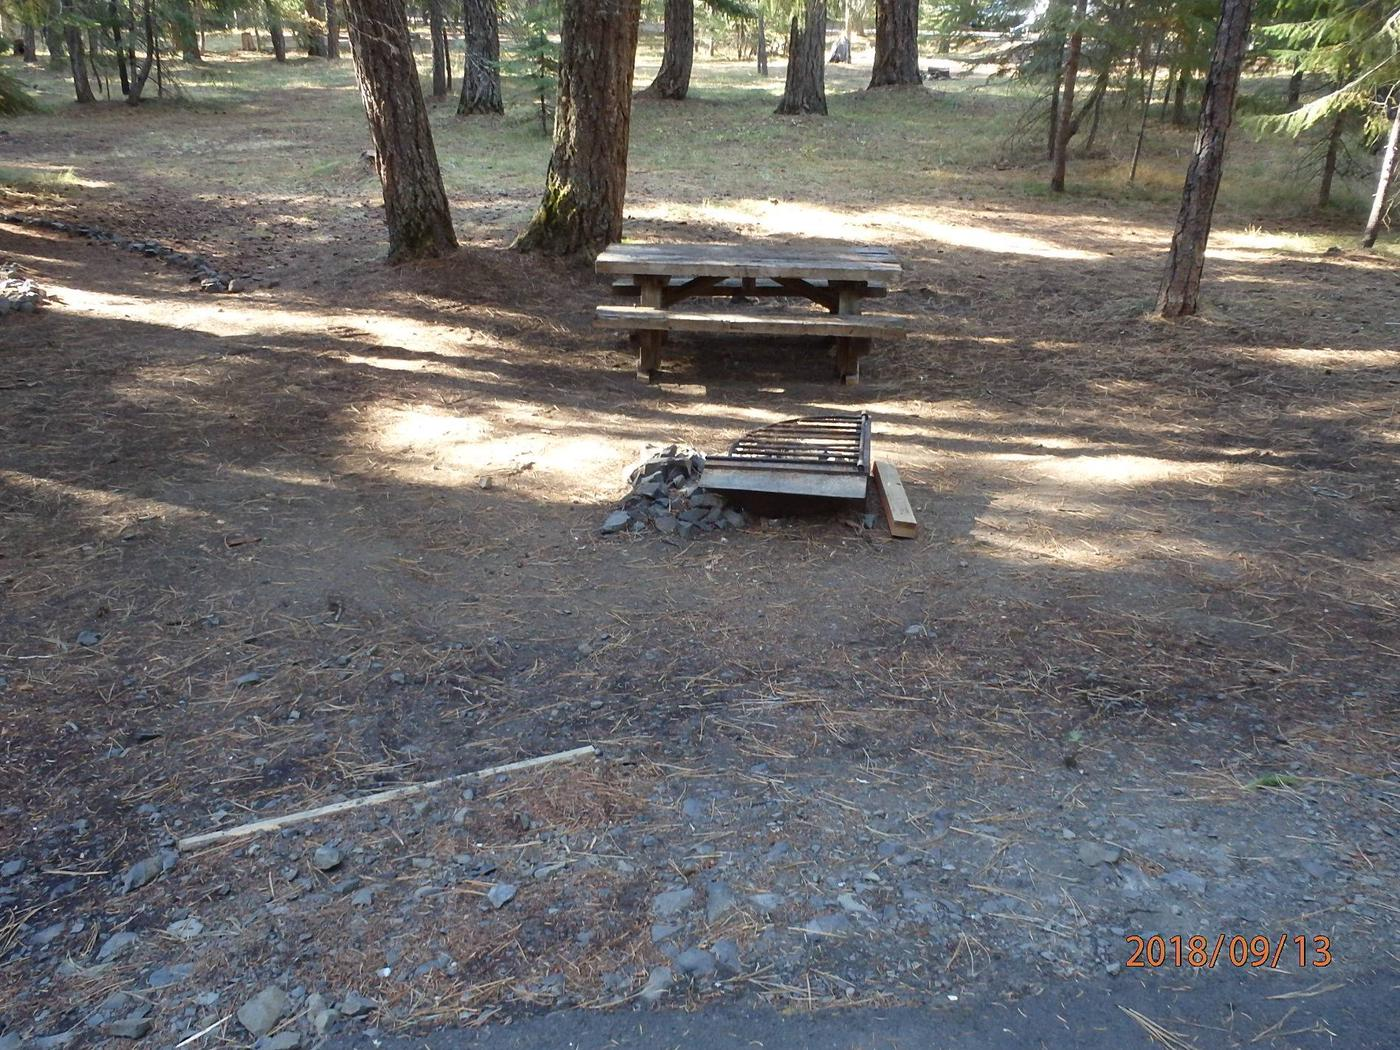 Kaner FlatNice open site with room for tents